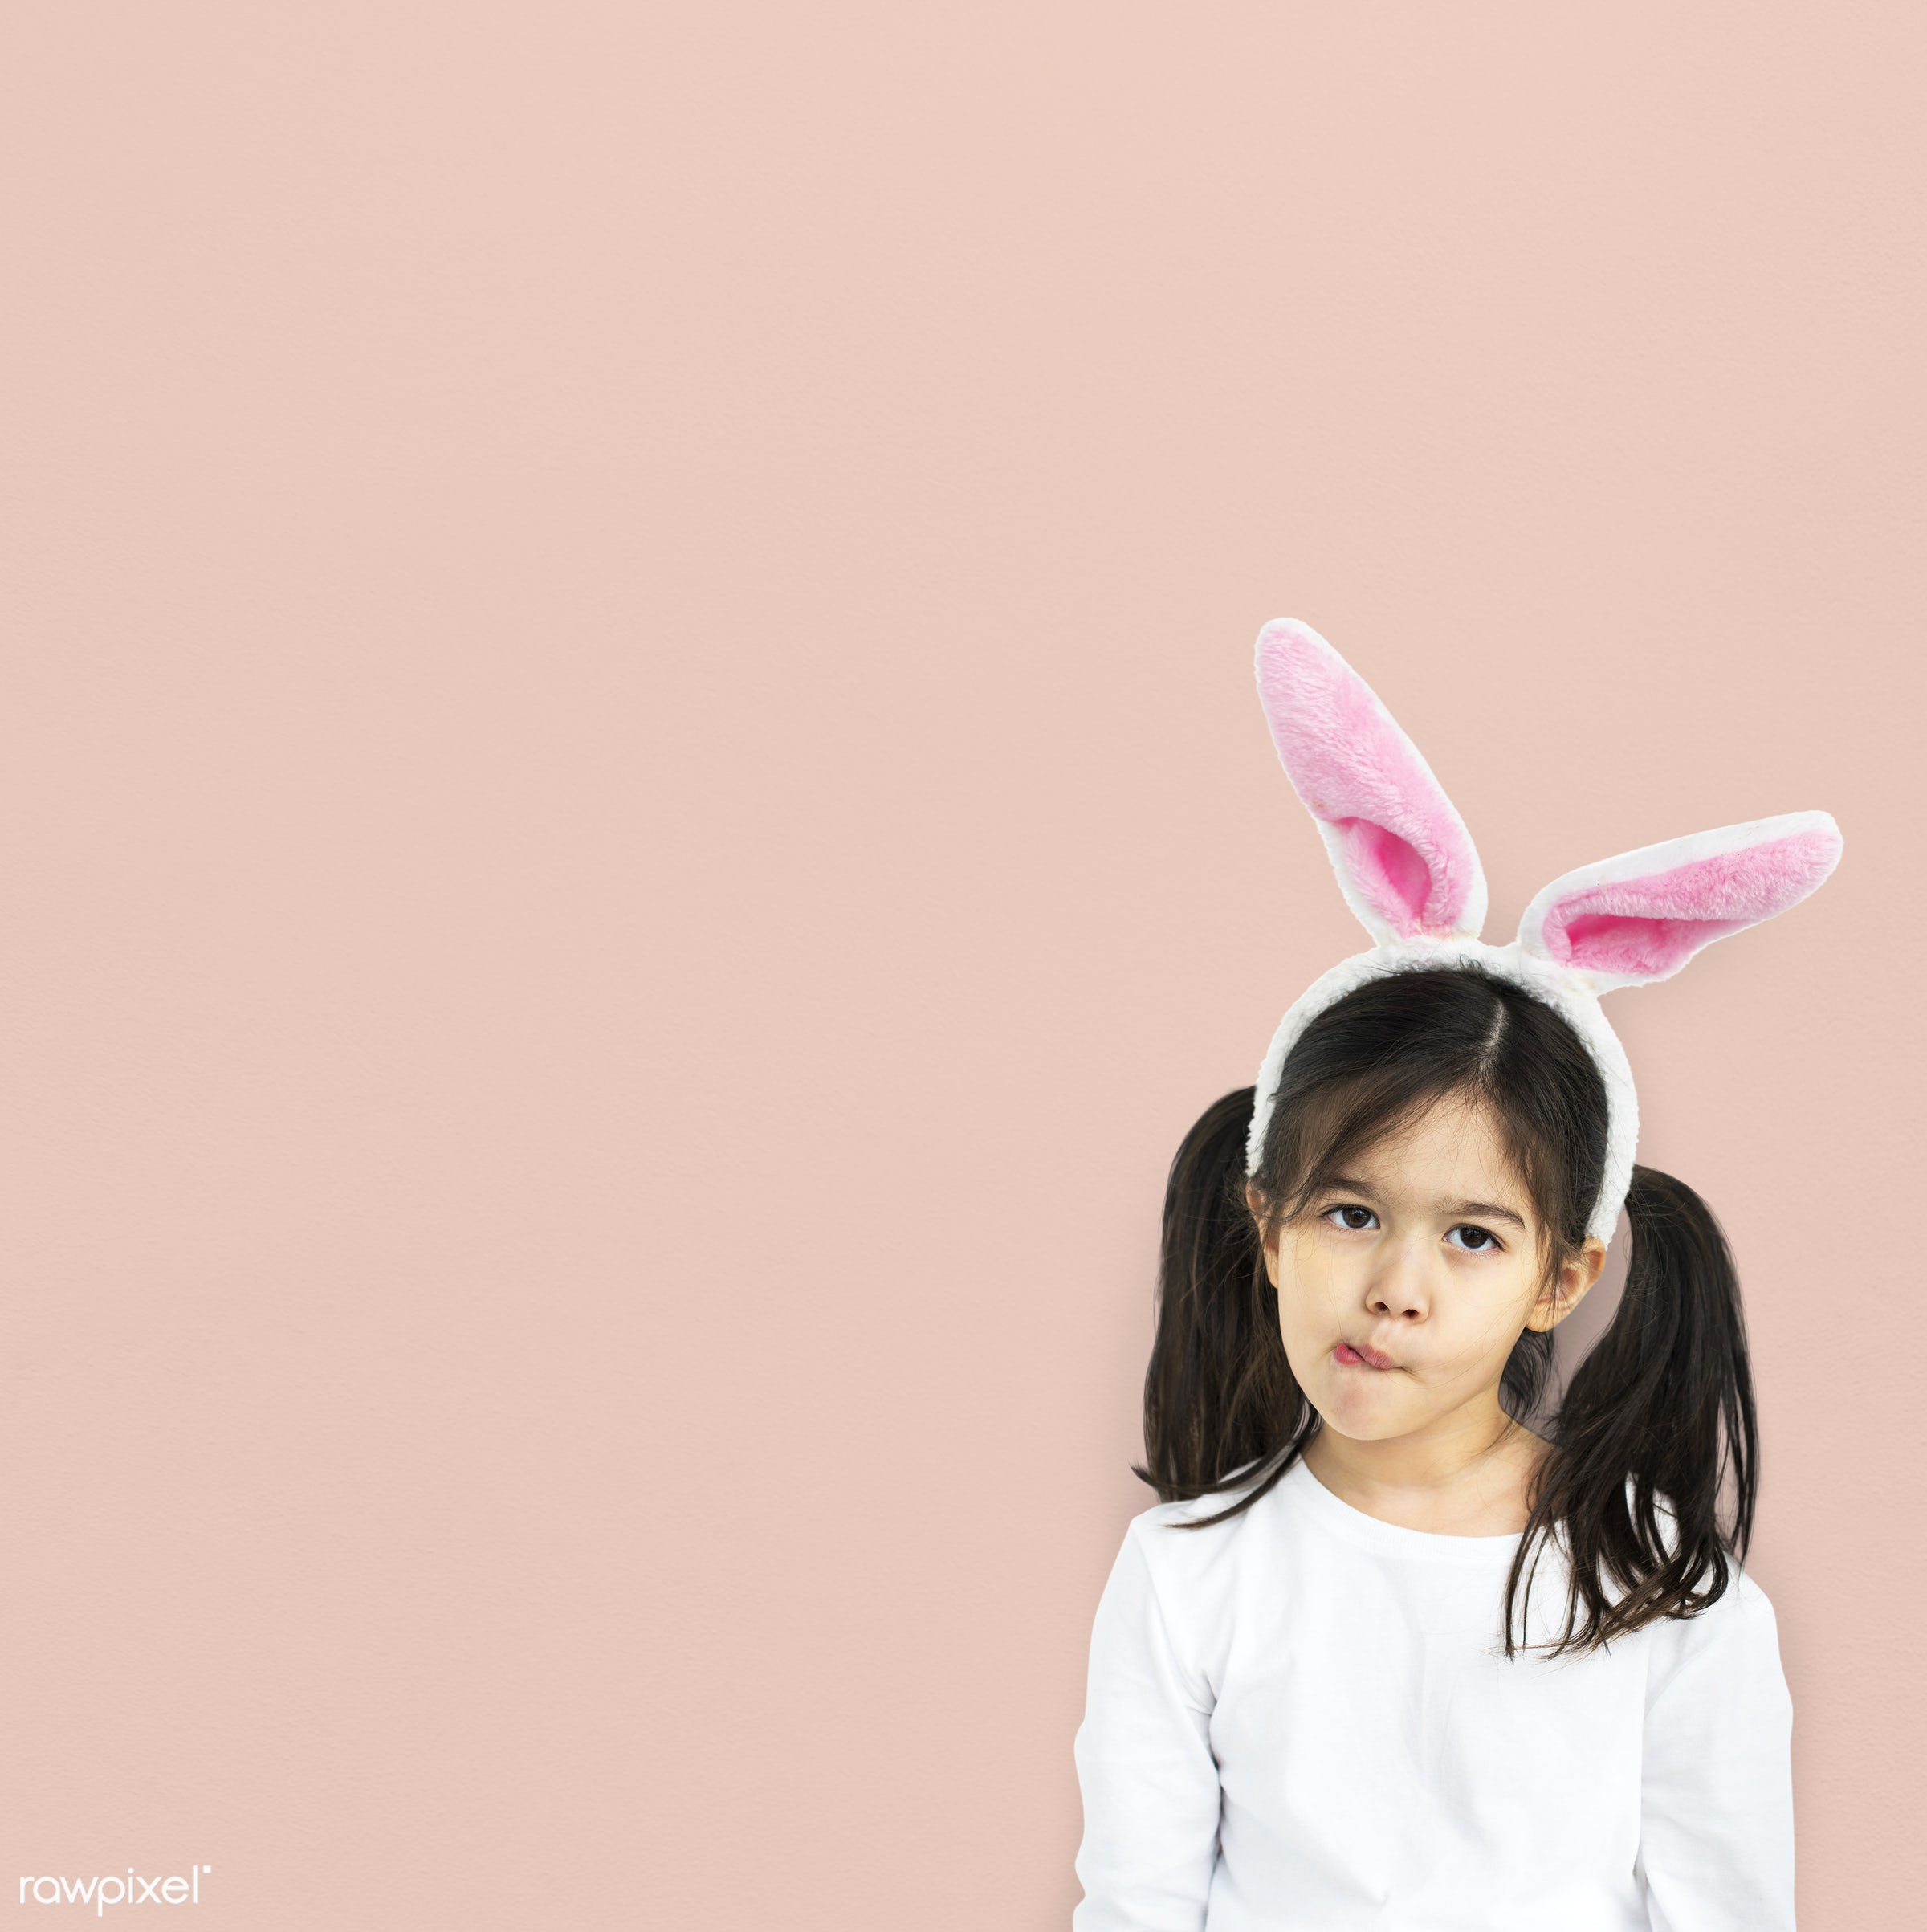 studio, expression, person, little, people, asian, curious, solo, black hair, woman, childhood, cheerful, alone, isolated,...